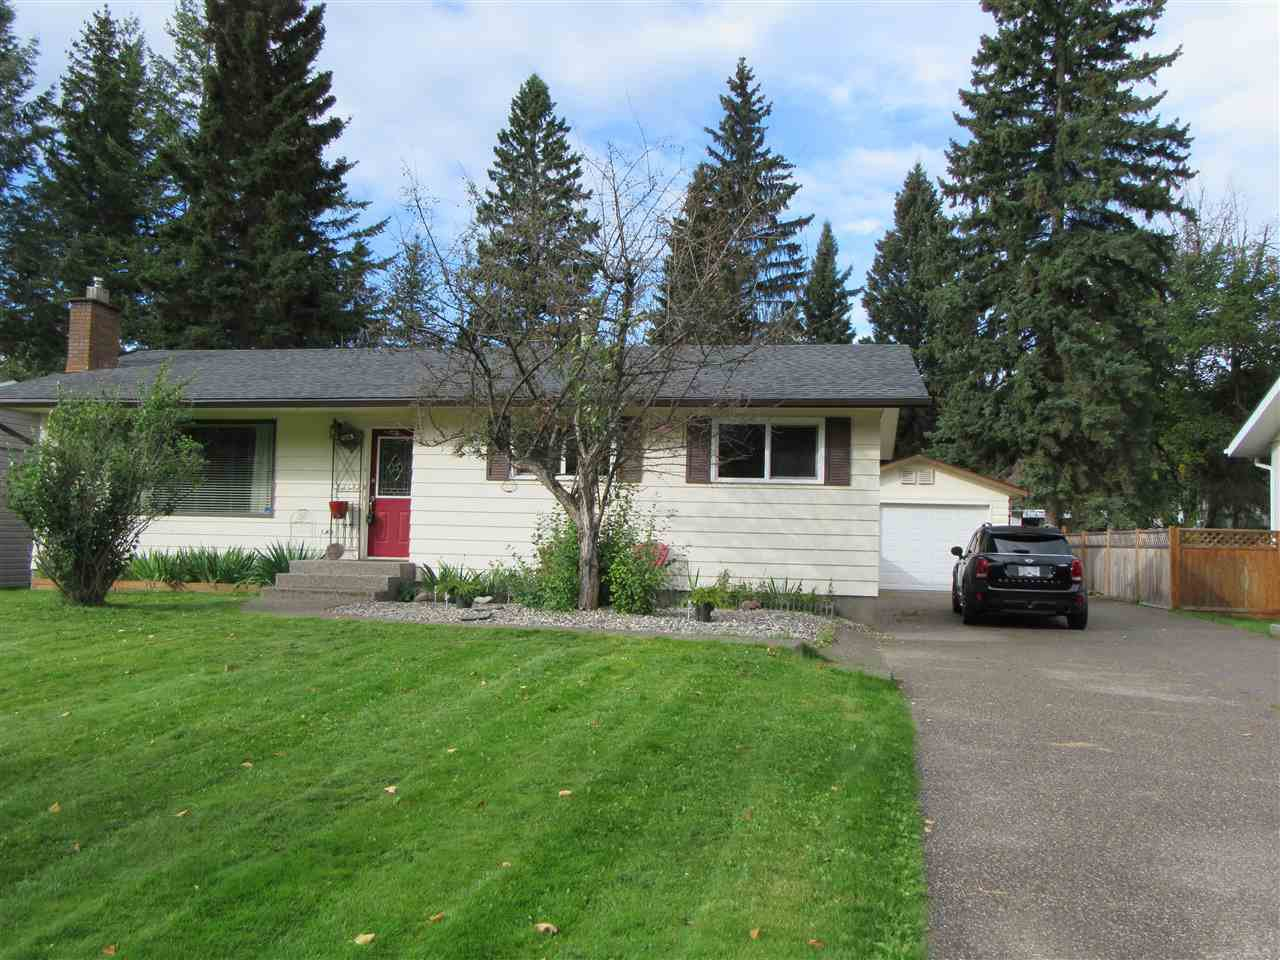 """Main Photo: 5663 TRENT Drive in Prince George: Lower College House for sale in """"LOWER COLLEGE HEIGHTS"""" (PG City South (Zone 74))  : MLS®# R2501594"""